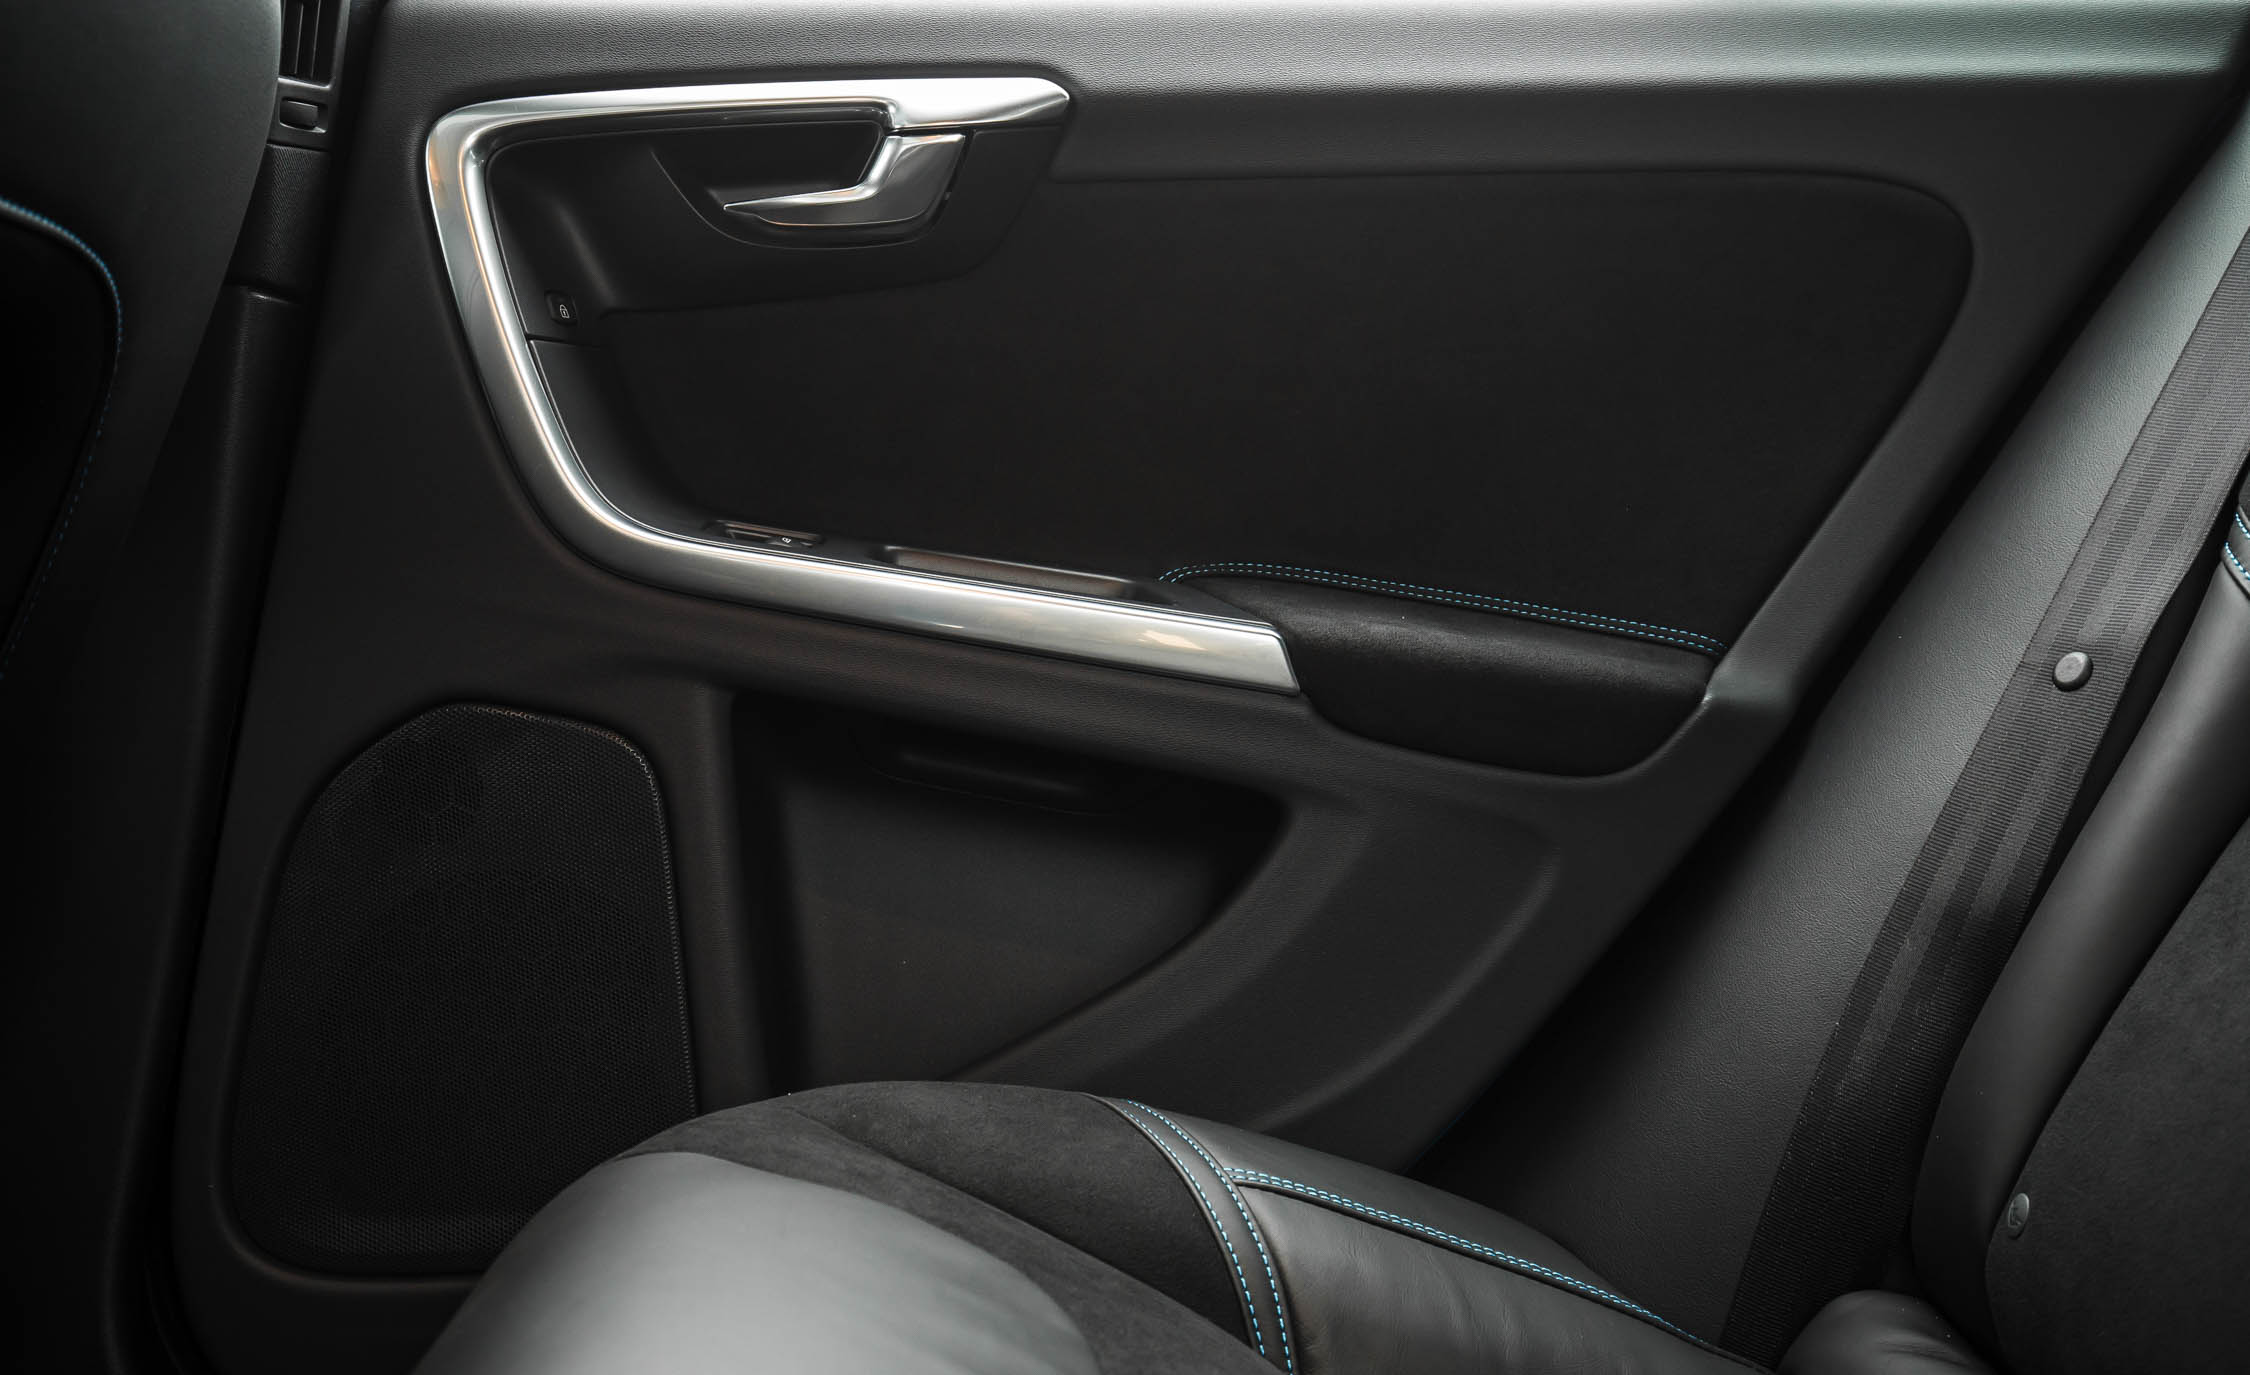 2017 Volvo V60 Polestar Interior View Door Trim Rear (Photo 36 of 53)